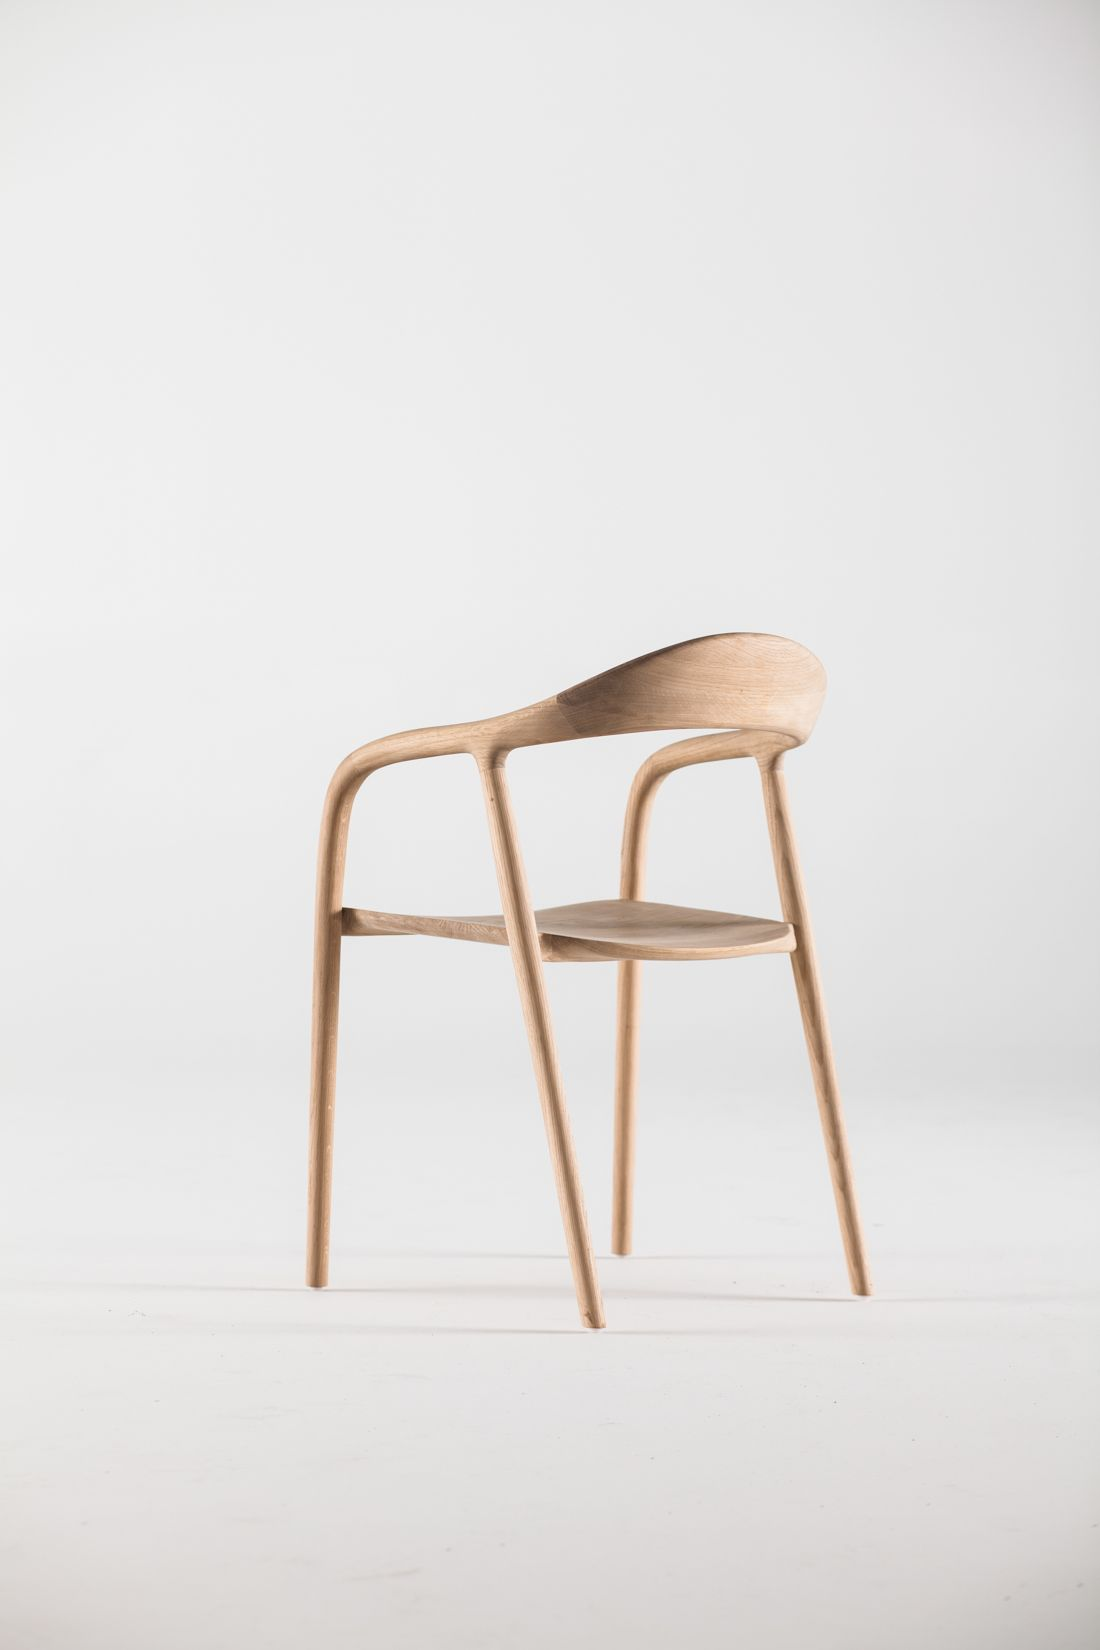 Regular Company Debuts Bloop And Neva Chair Design Chair Home